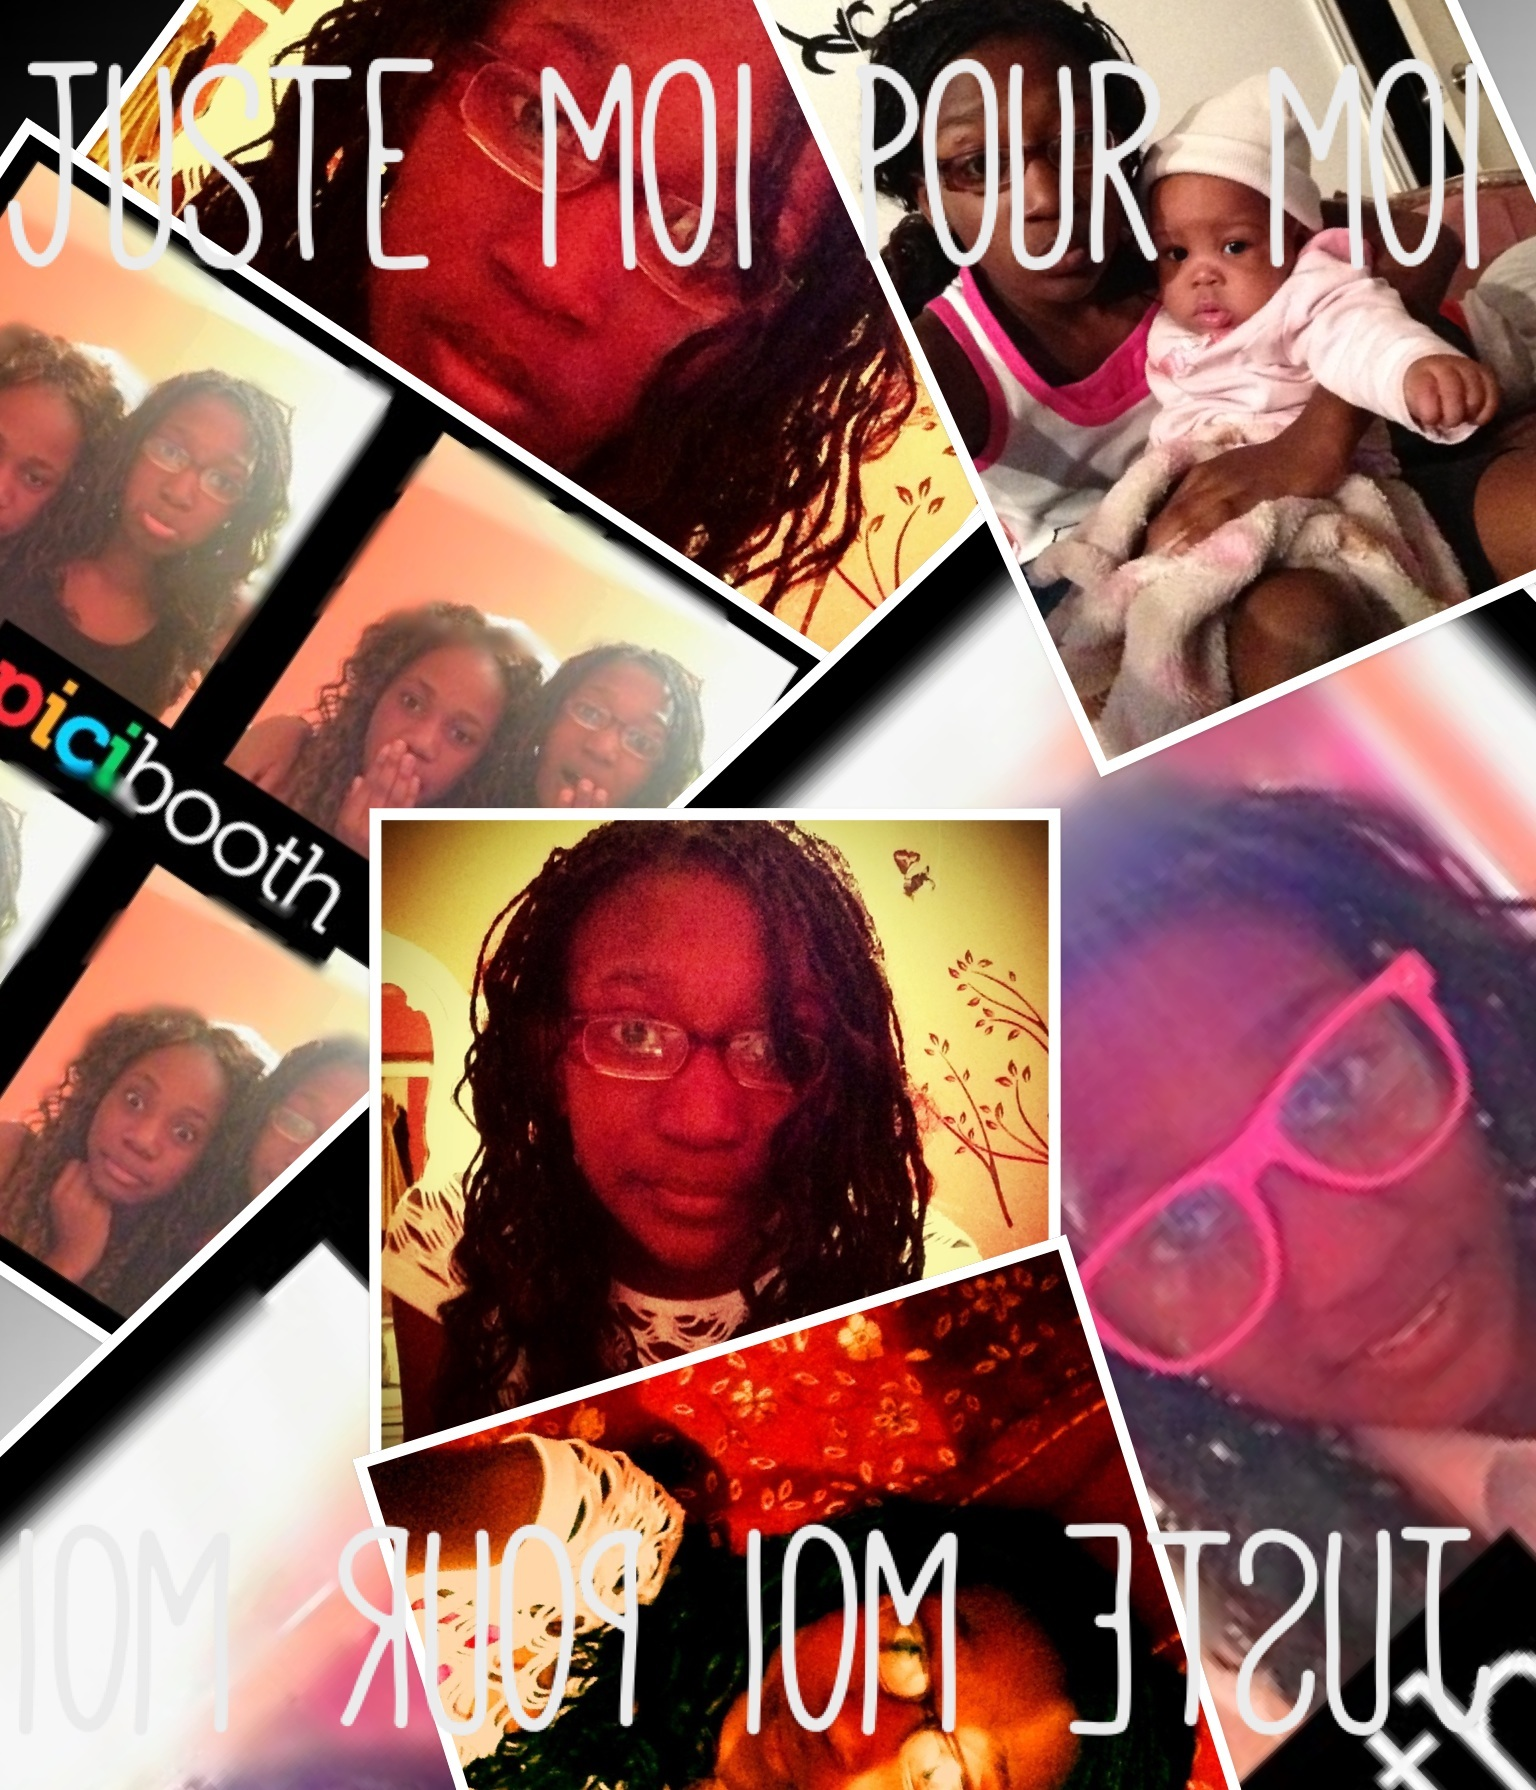 I love my self like i im- je maime comme je suis